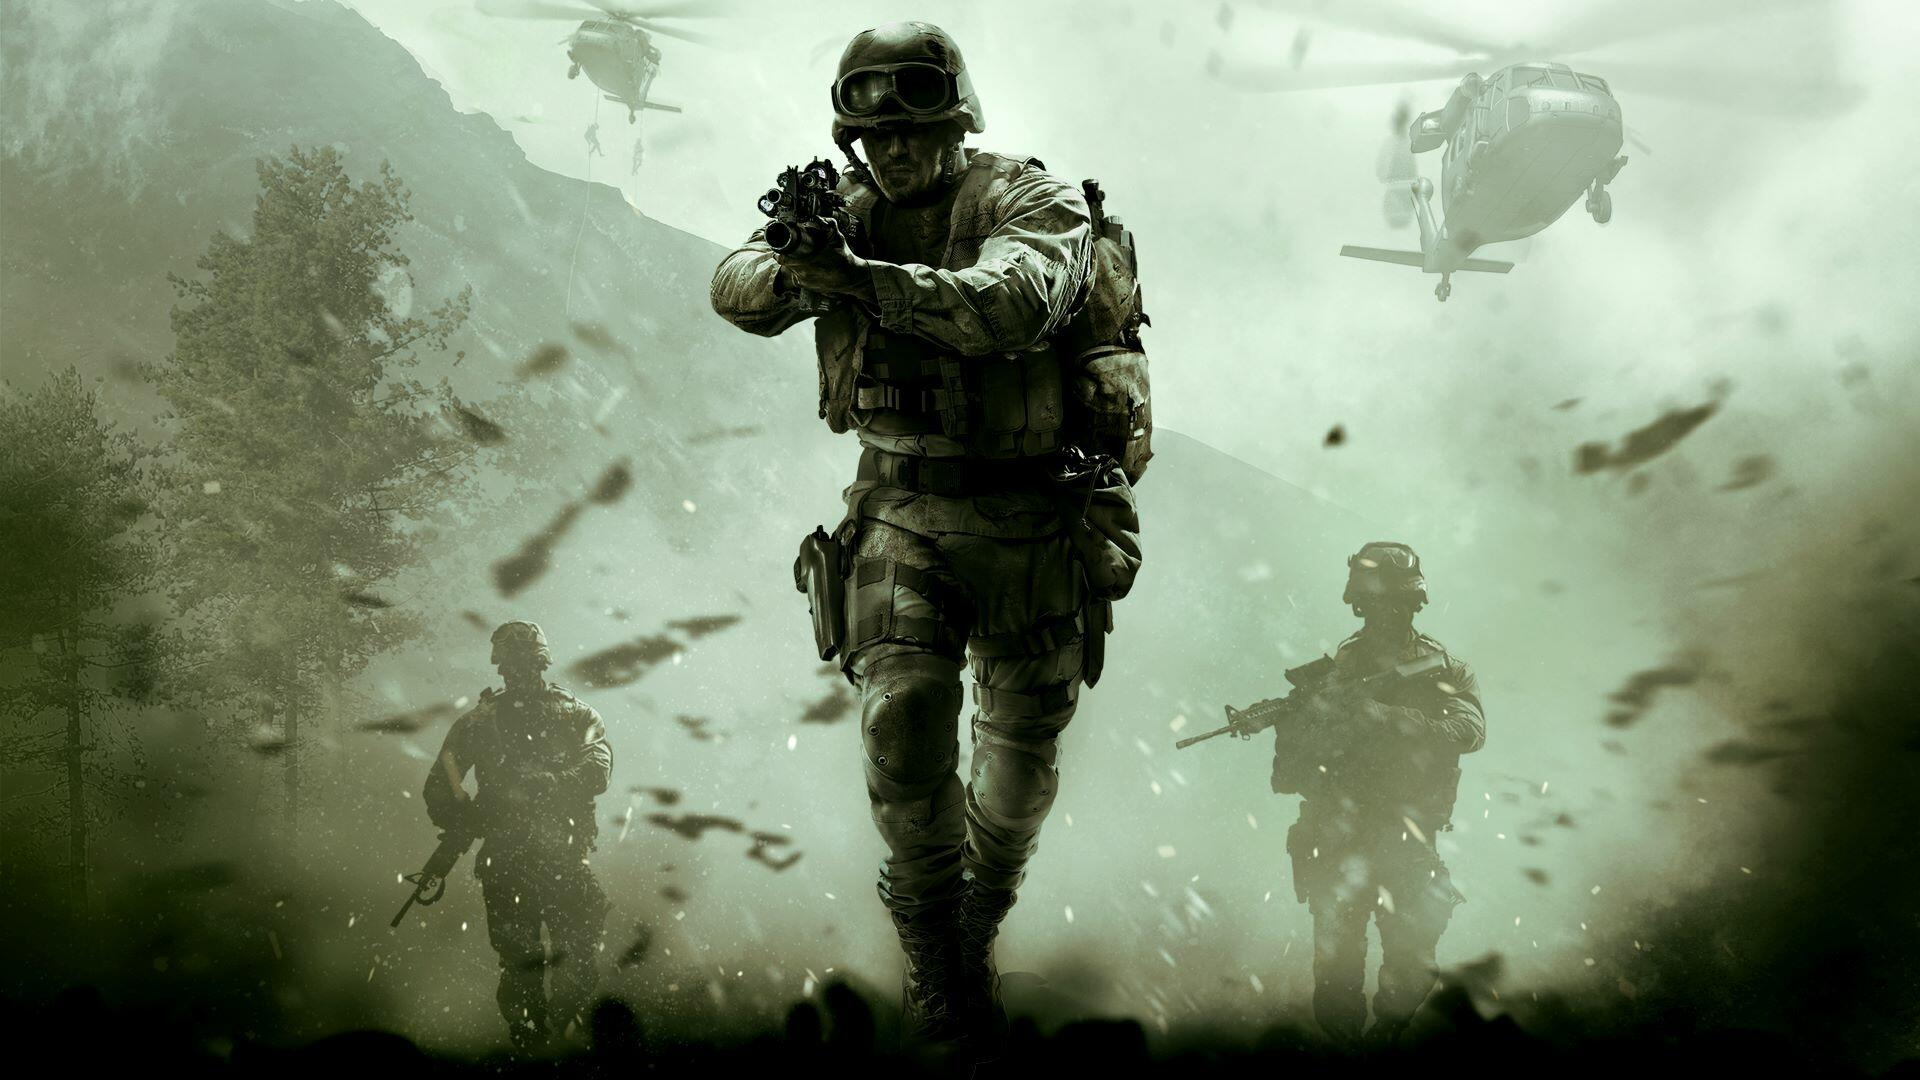 Report: Treyarch Takes Over Call of Duty 2020, Will Be Reworked Into A New Black Ops Game